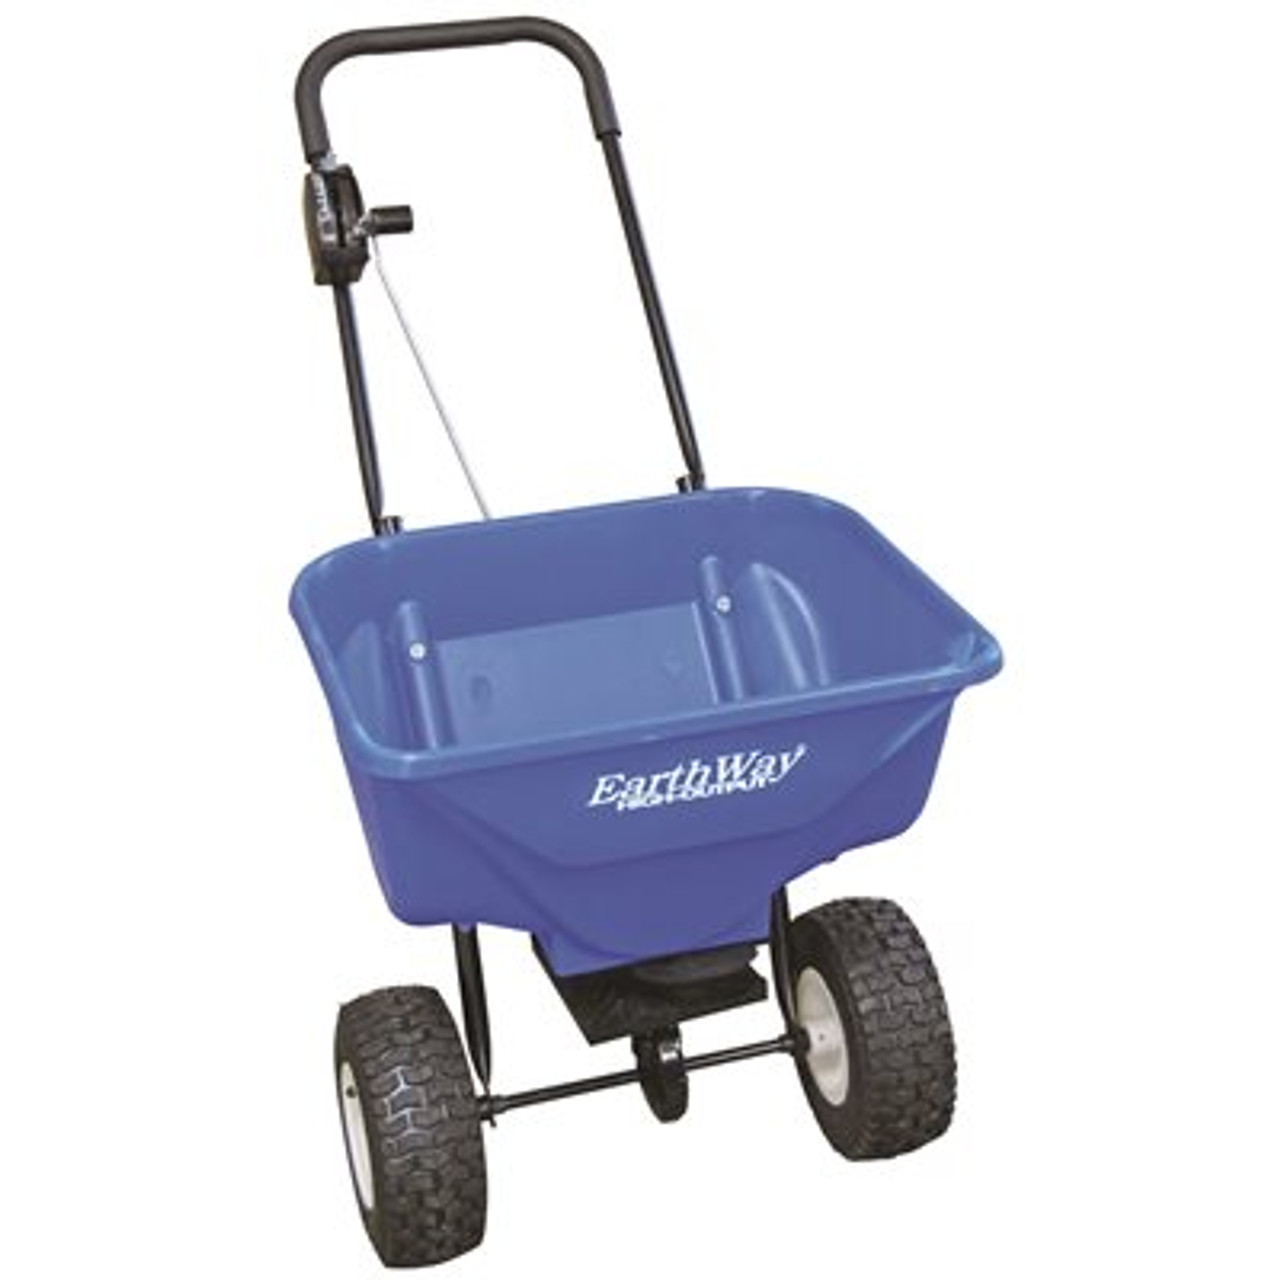 EARTHWAY 2040PI-PLUS BROADCAST SPREADER | BROWN PALLETS